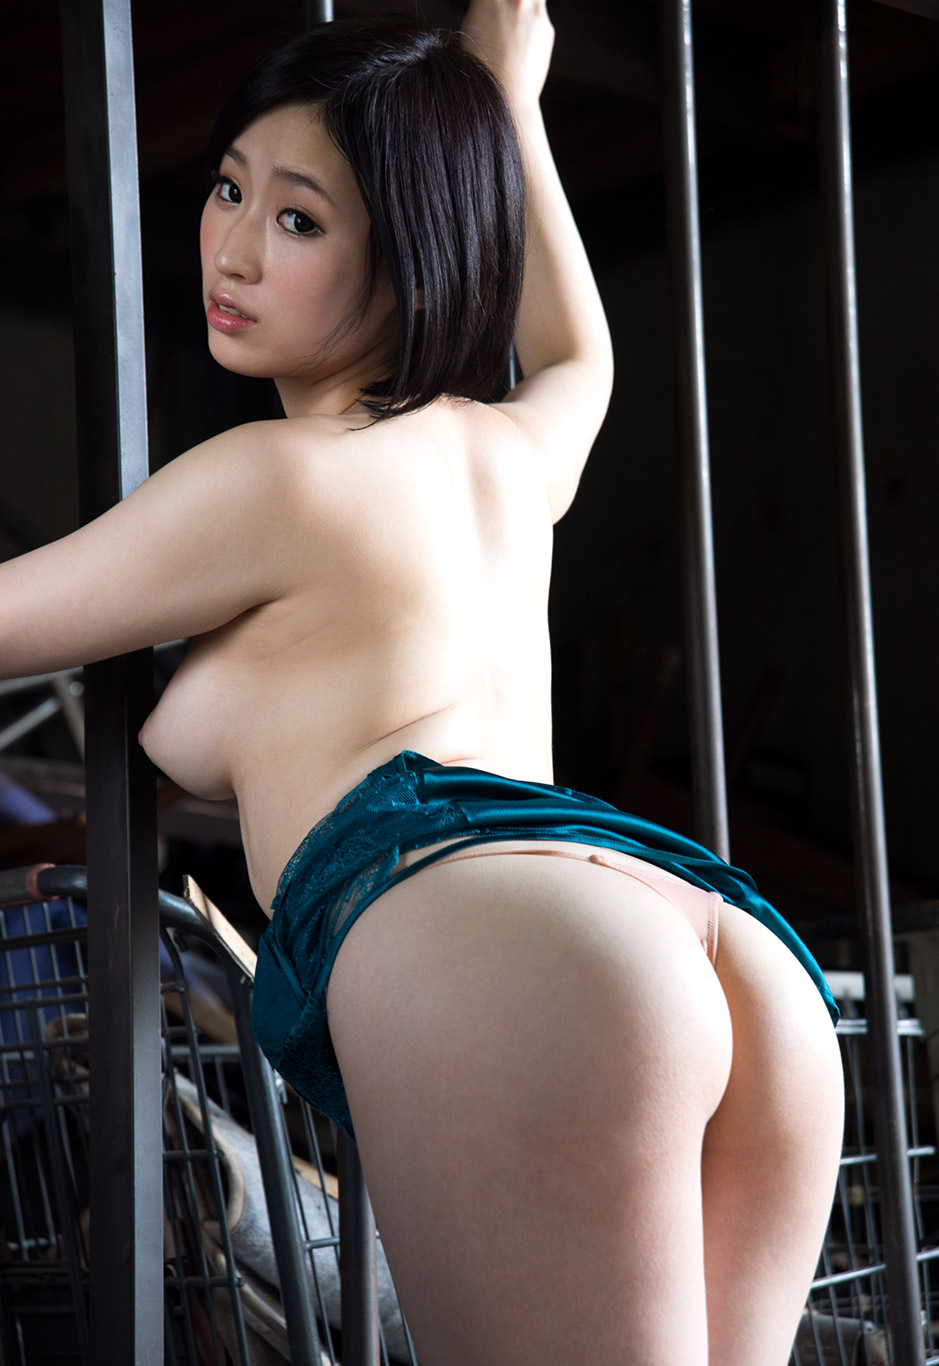 Purejapanese Jav Model Sana Imanaga  Photo Collection 4-2892